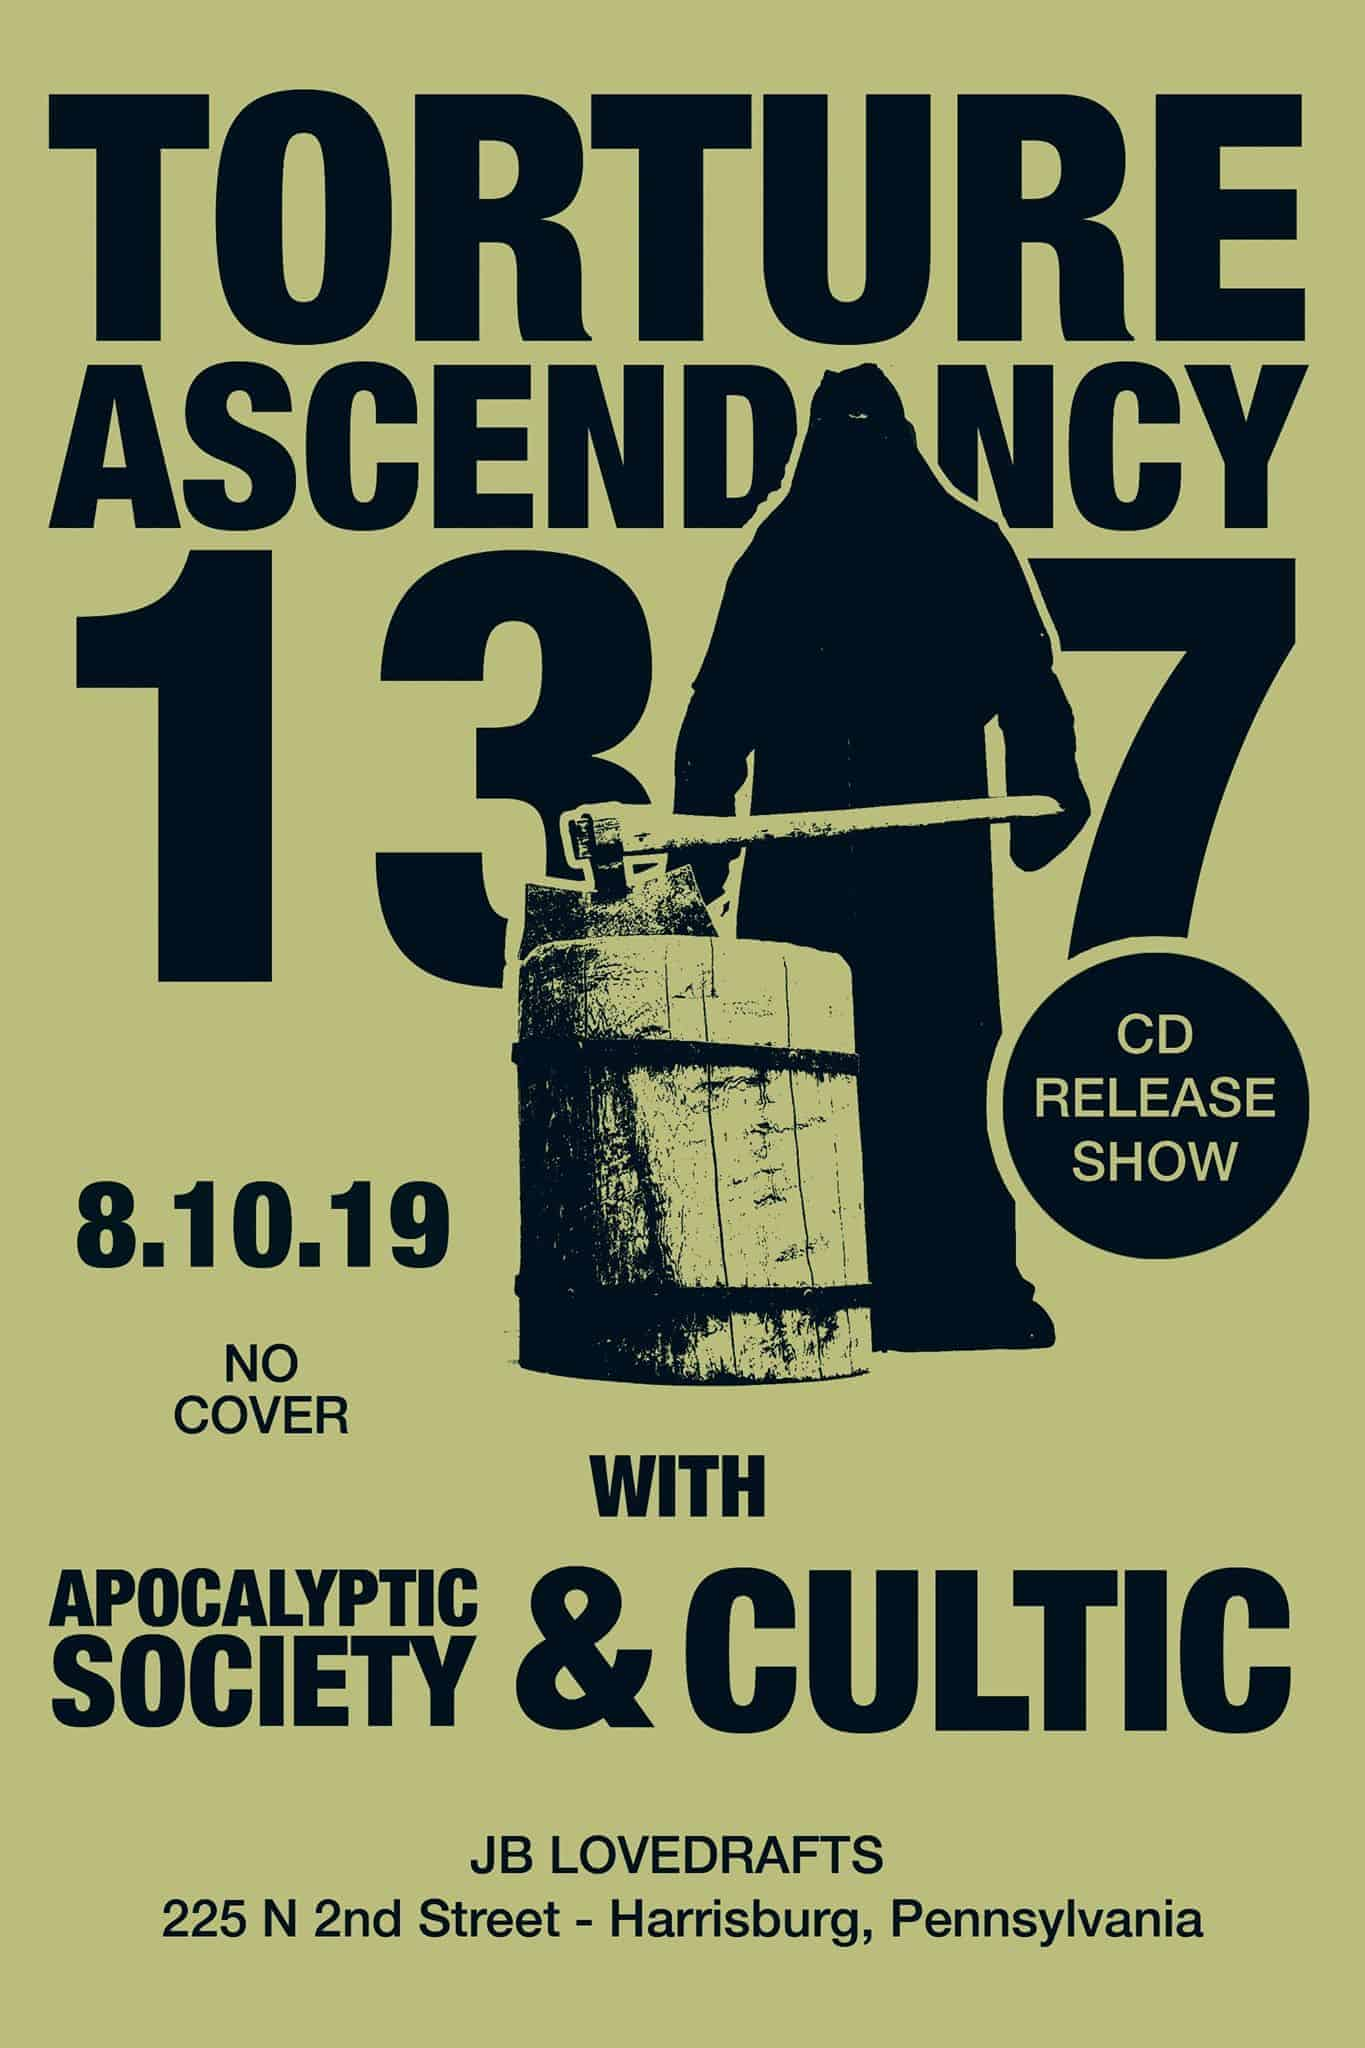 Torture Ascendancy, Apocalyptic Society and Cultic Metal Band Flyer